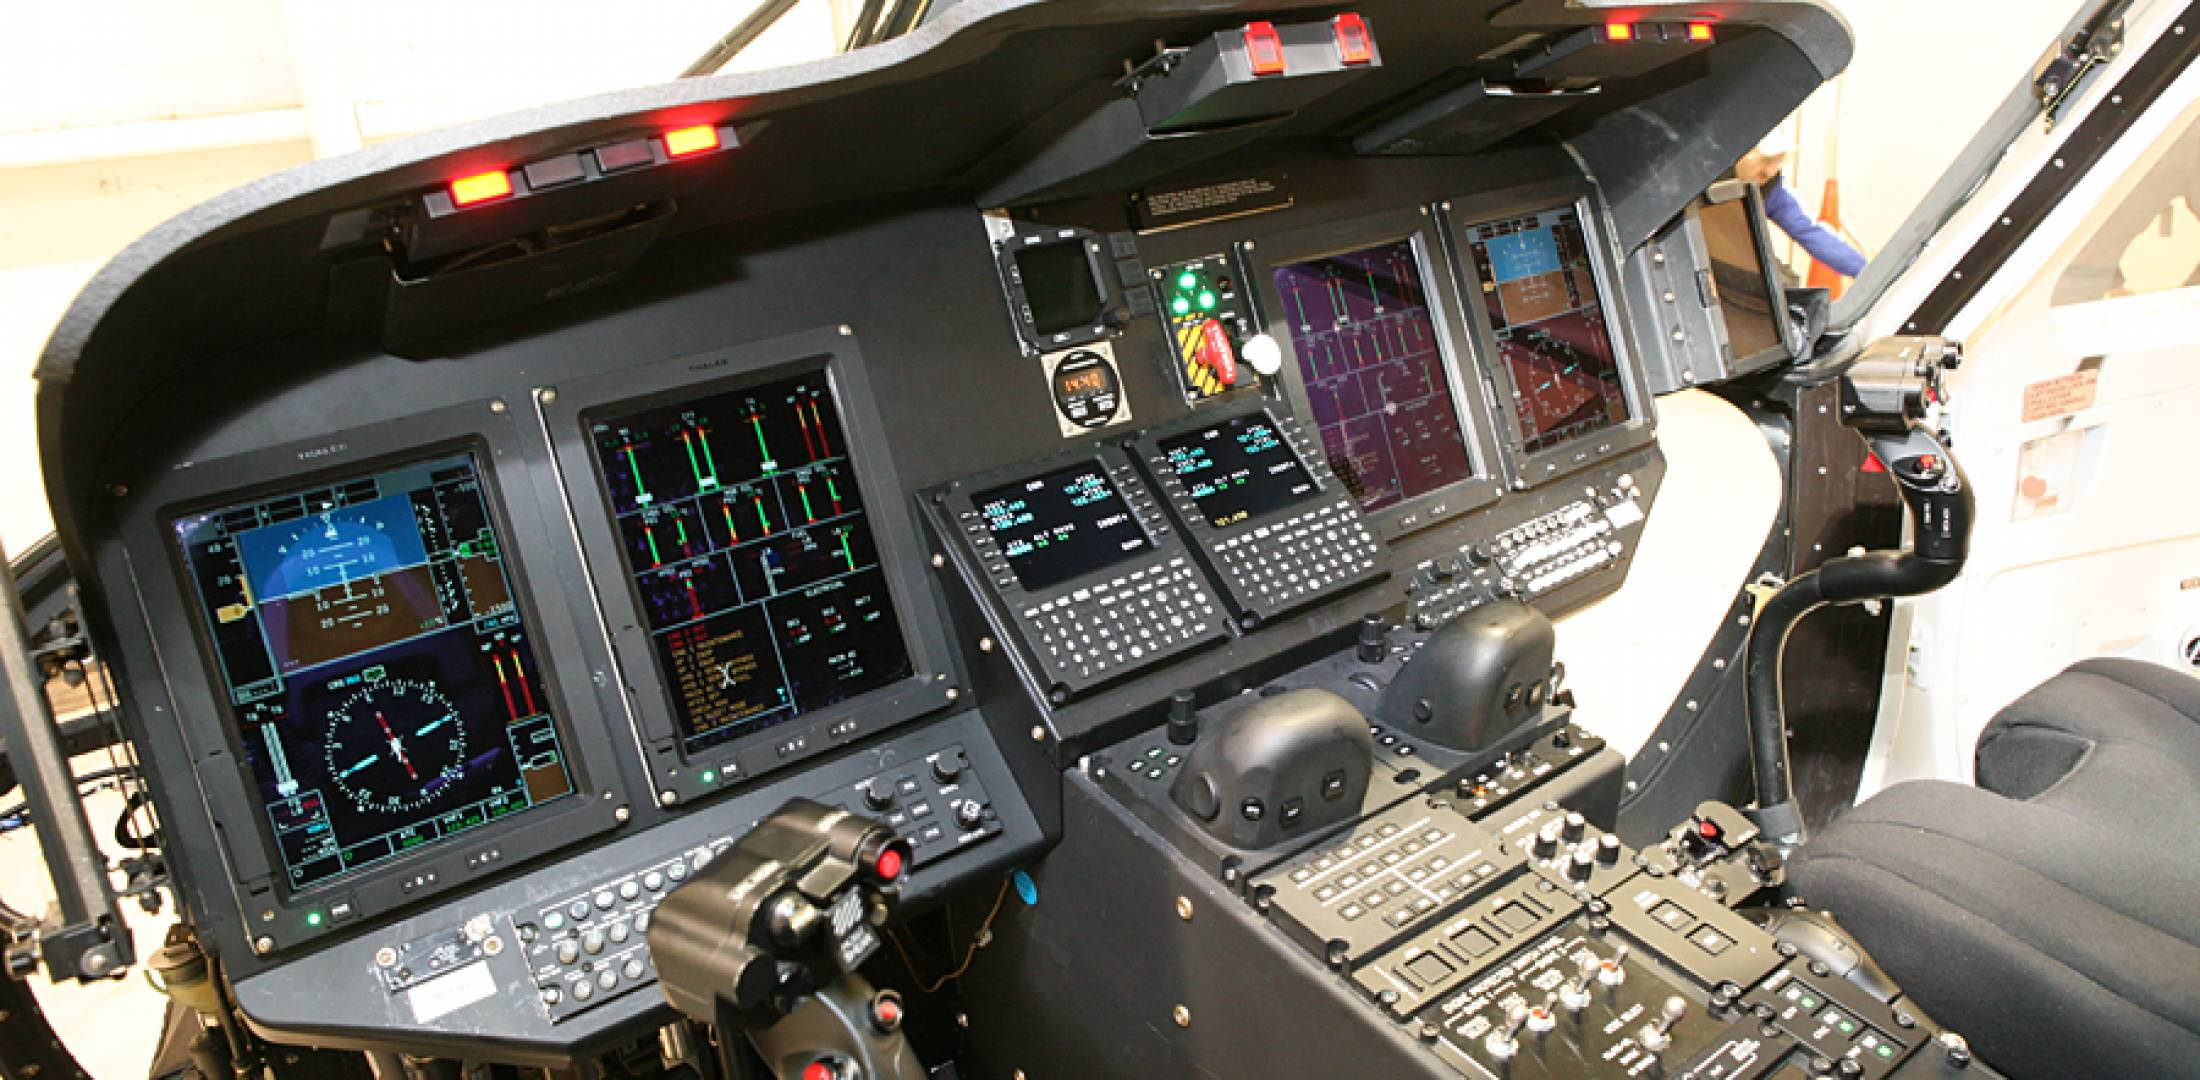 The Top Deck cockpit in Sikorsky's S-76D is based on four 6- by 8-inch displays